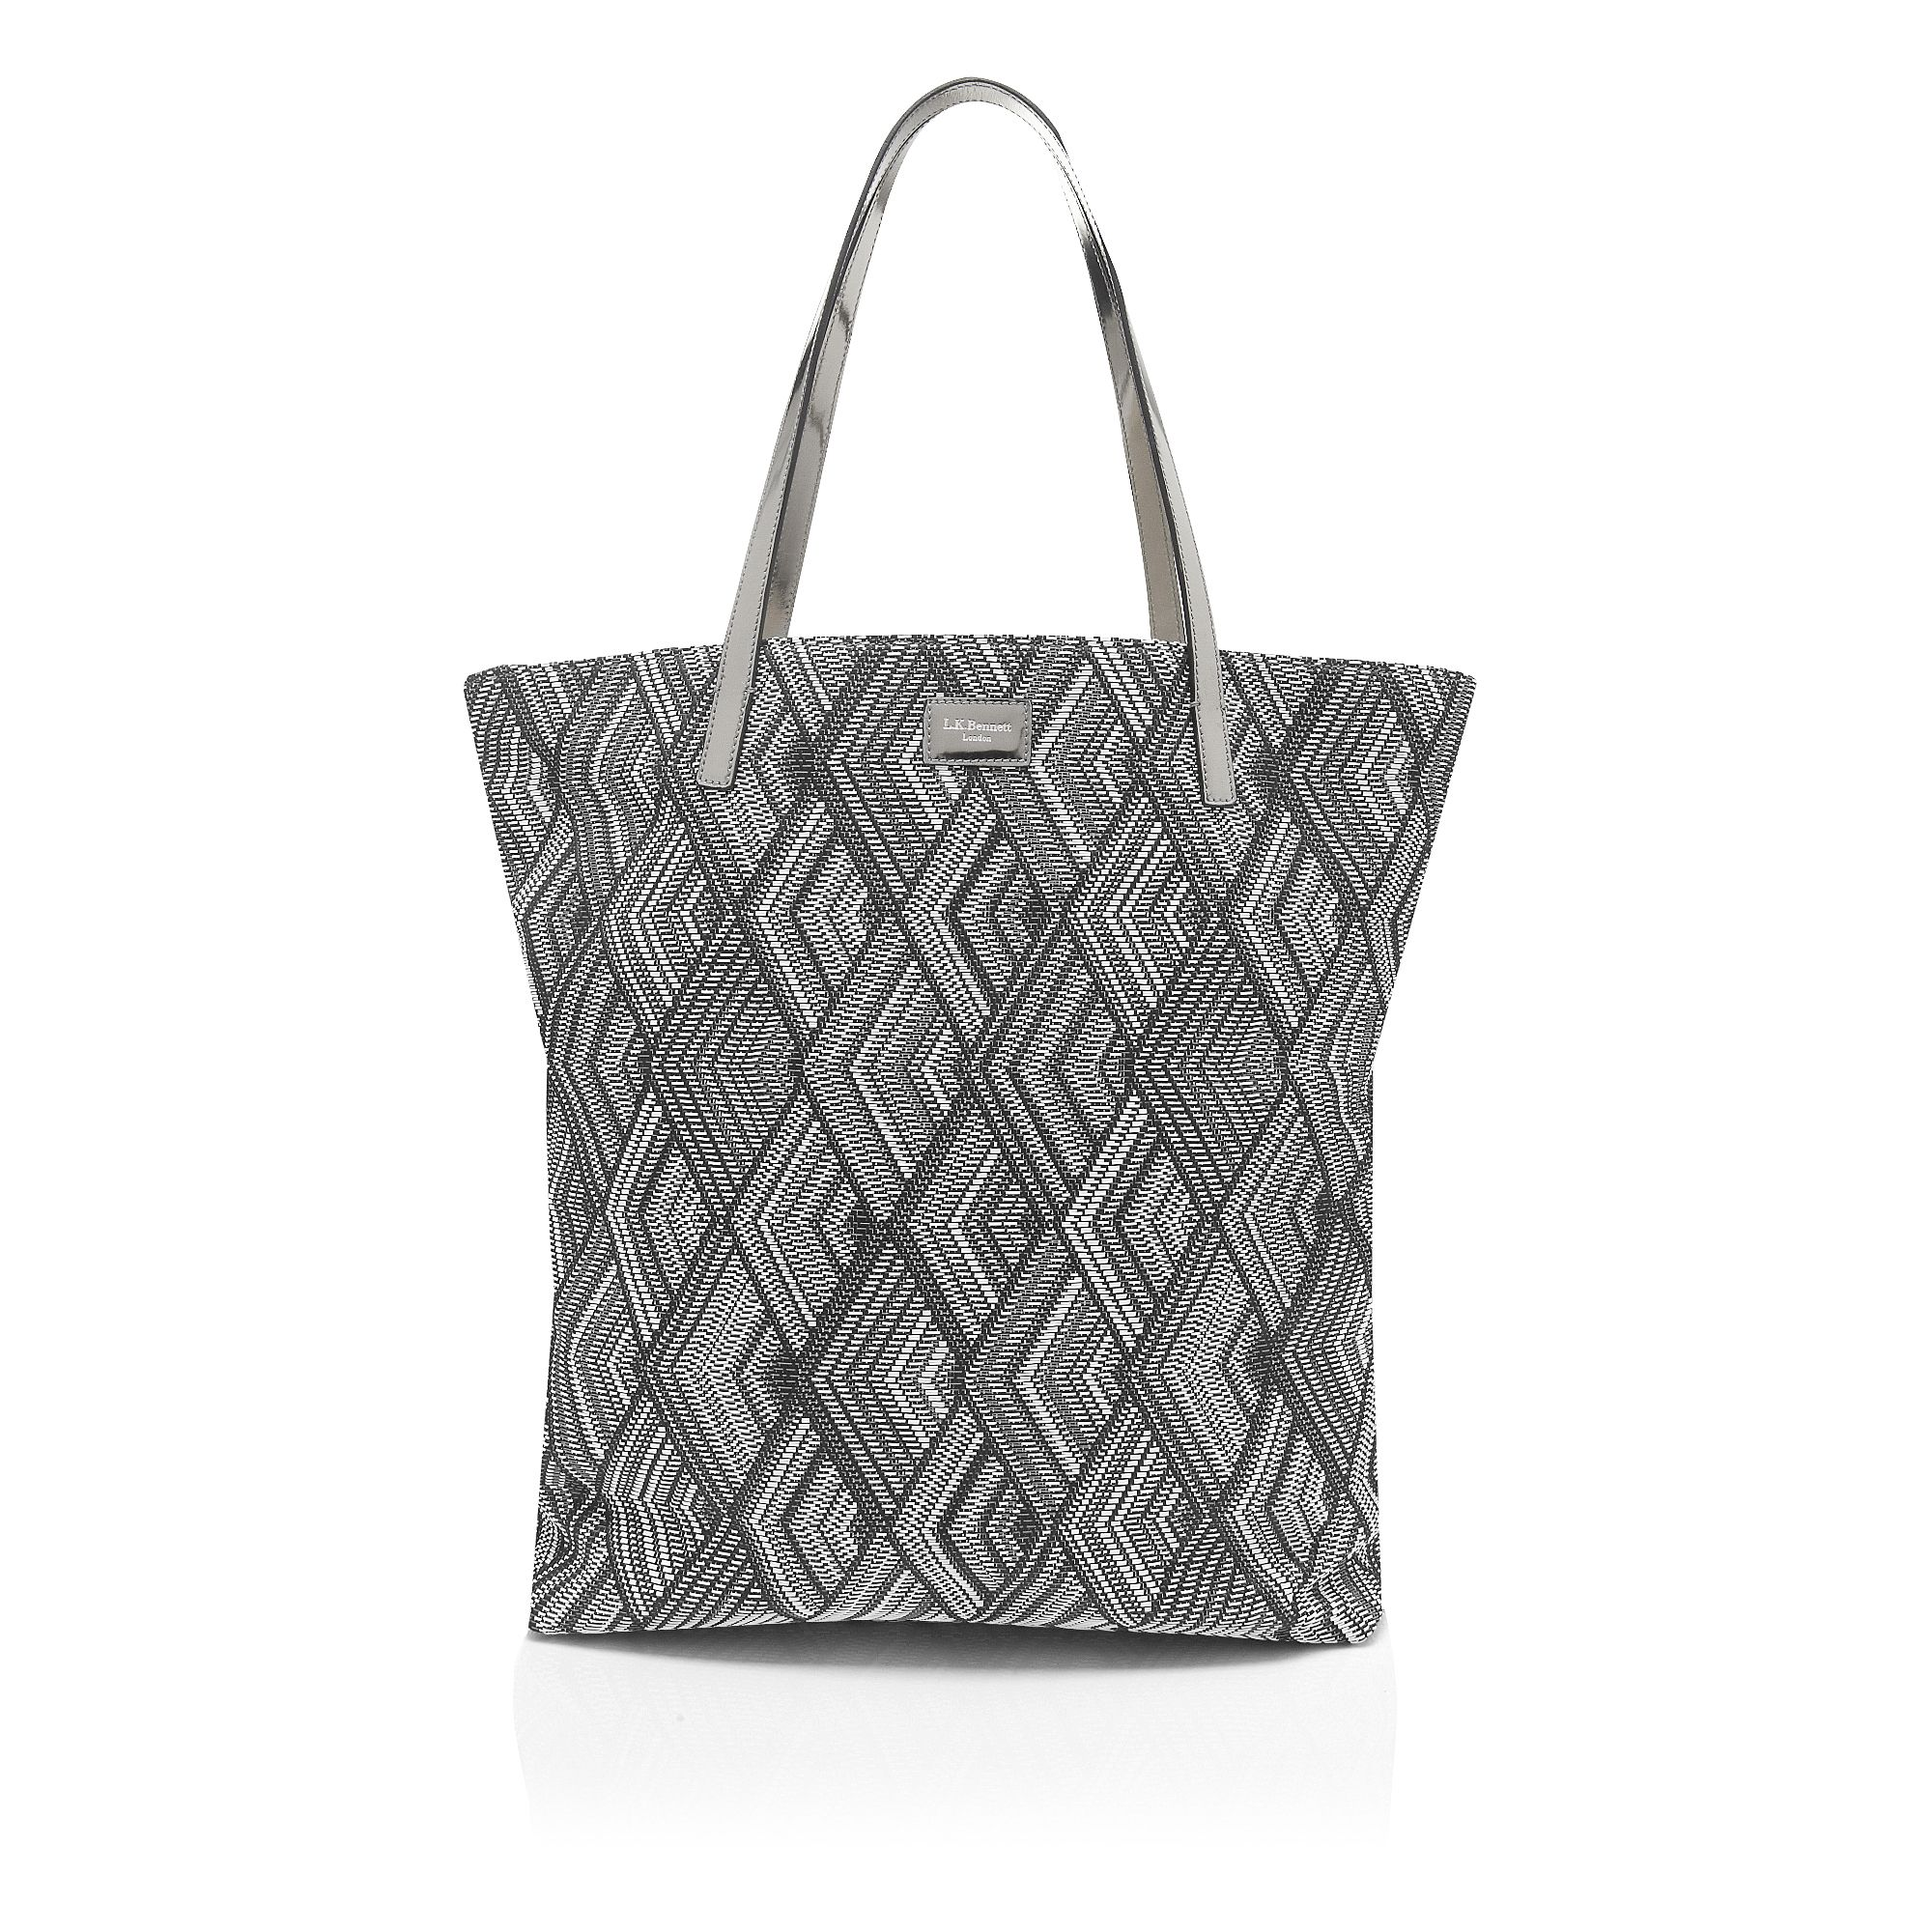 Nessa side zip tote bag